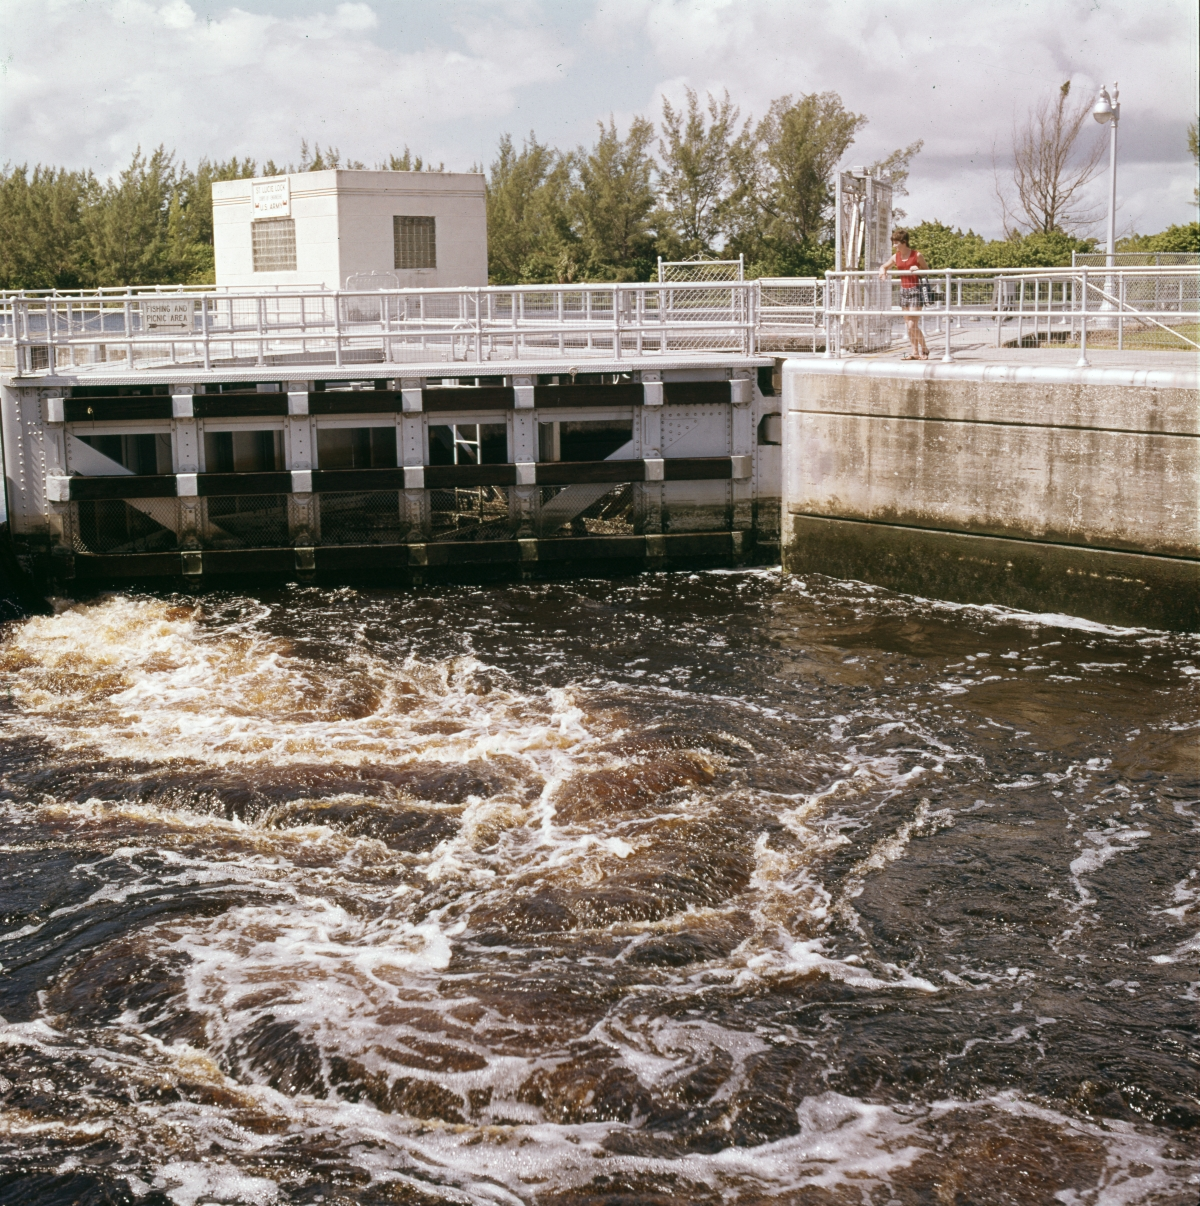 Close-up view of the St. Lucie Lock and Dam near Port Saint Lucie.